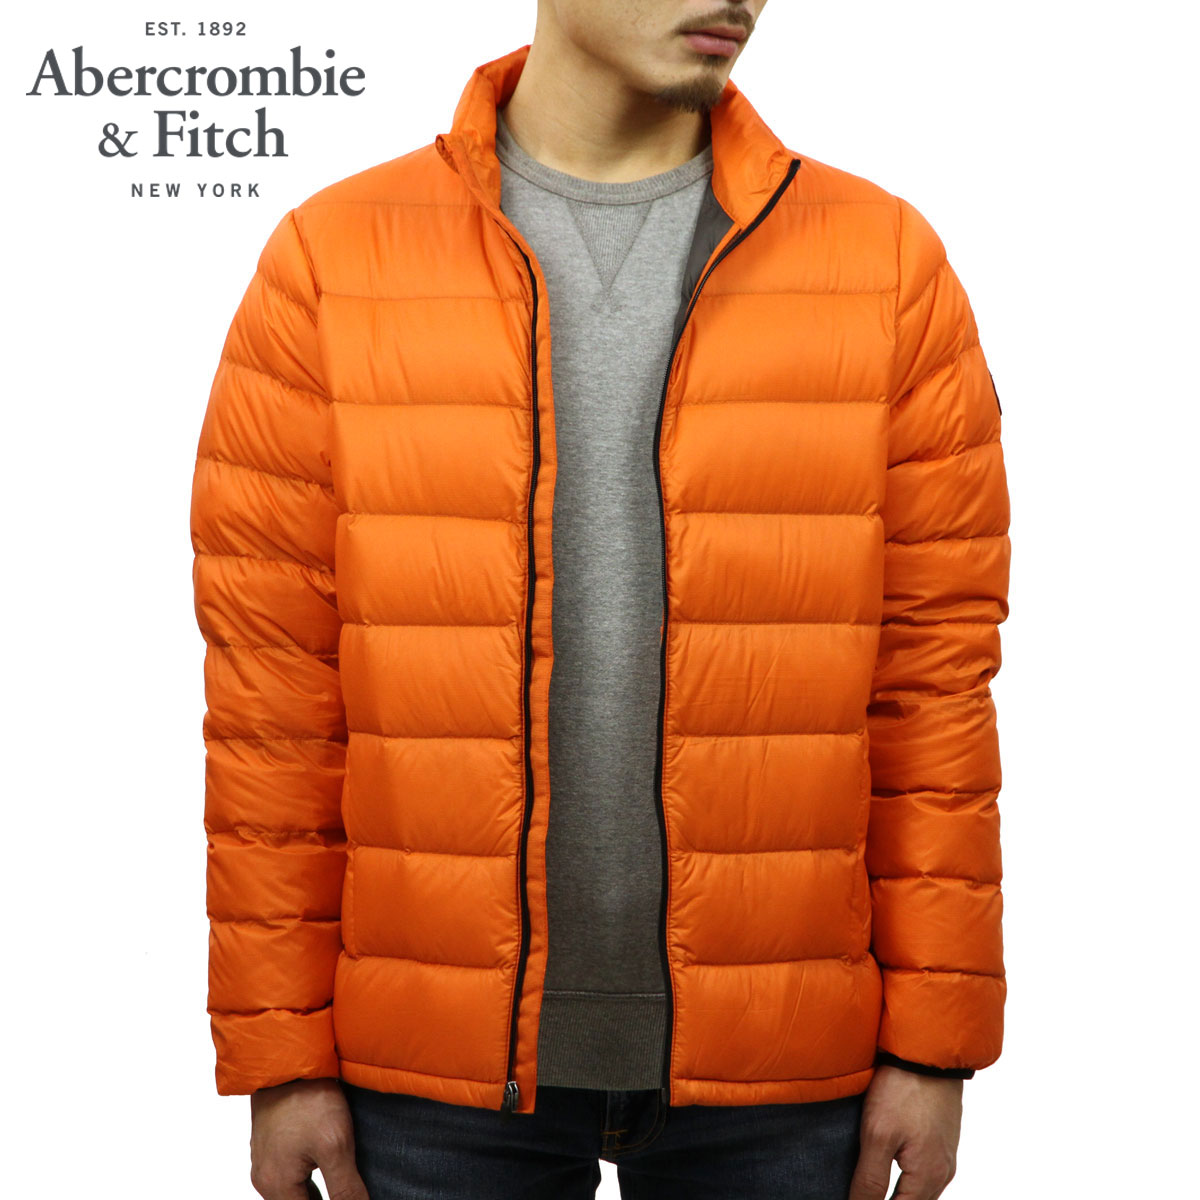 f1ad227aa ABBA black down jacket men's regular article Abercrombie & Fitch outer  jacket LIGHTWEIGHT DOWN-FILLED PACKABLE PUFFER 132-328-1156-700